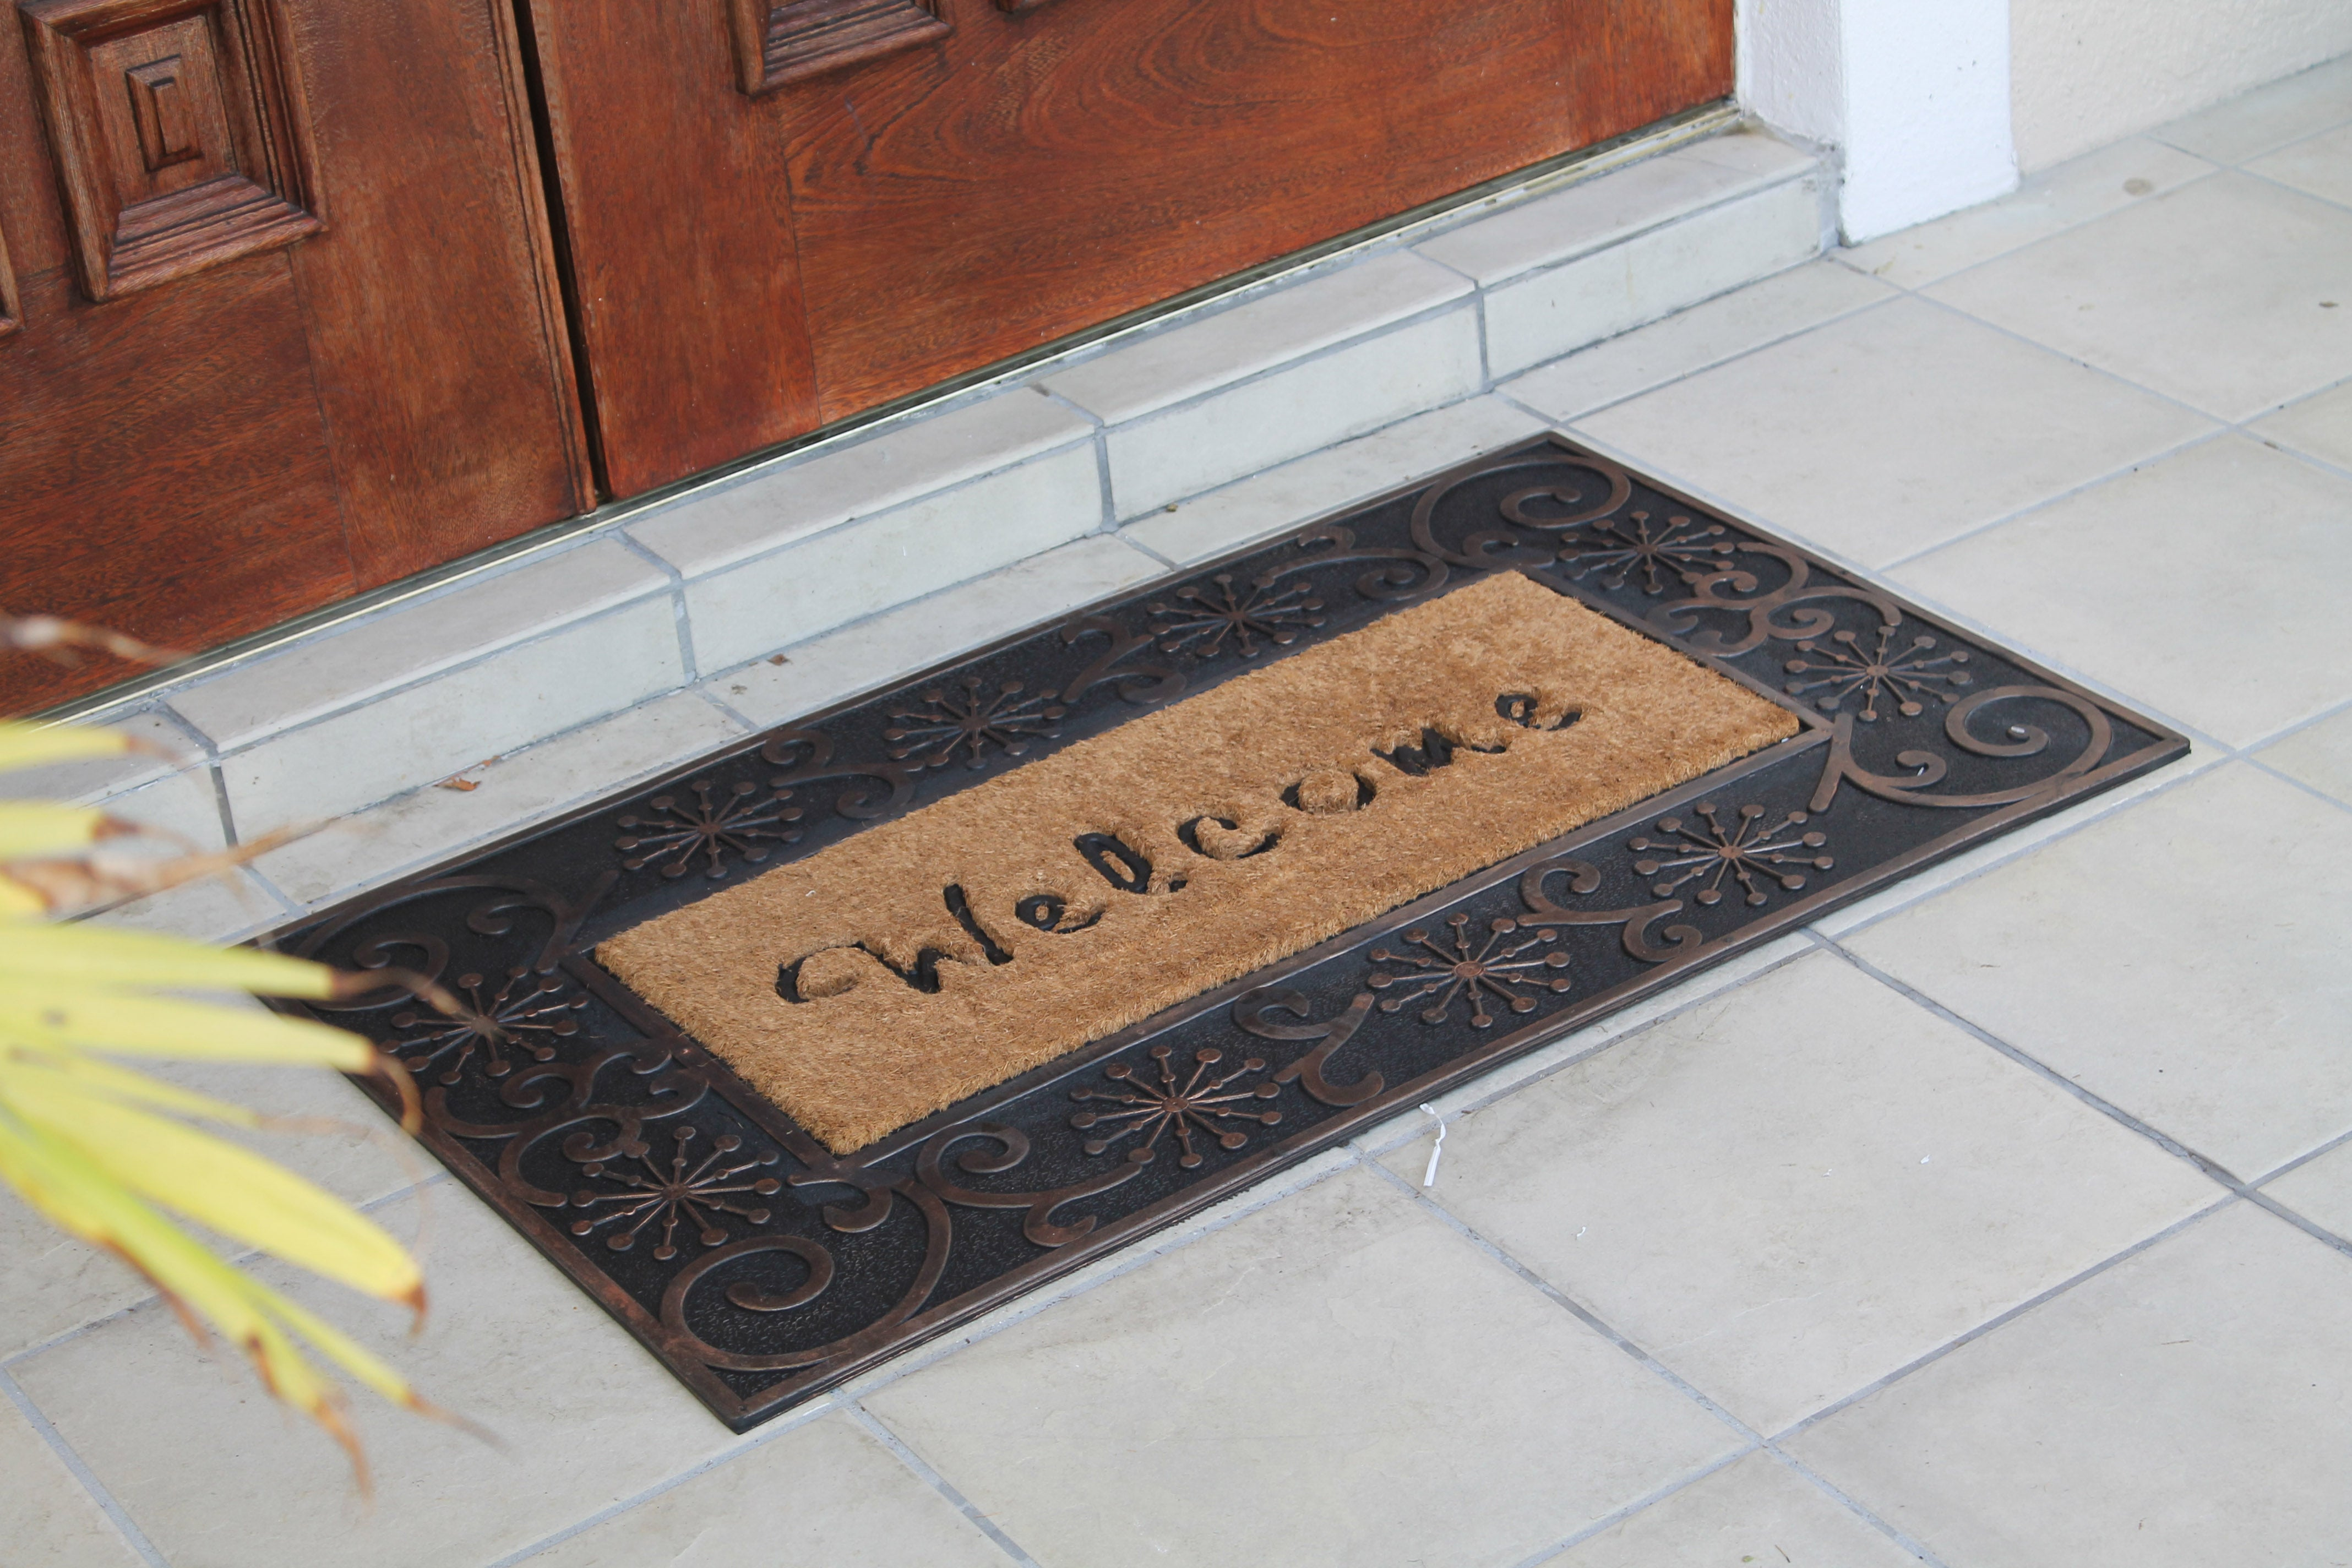 more rug front interior images design amazing exciting southwest personalized kokopelli low doormats outdoor mats house welcome buywine ideas monogrammed plan and image best for mat large doormat ikea profile door coir